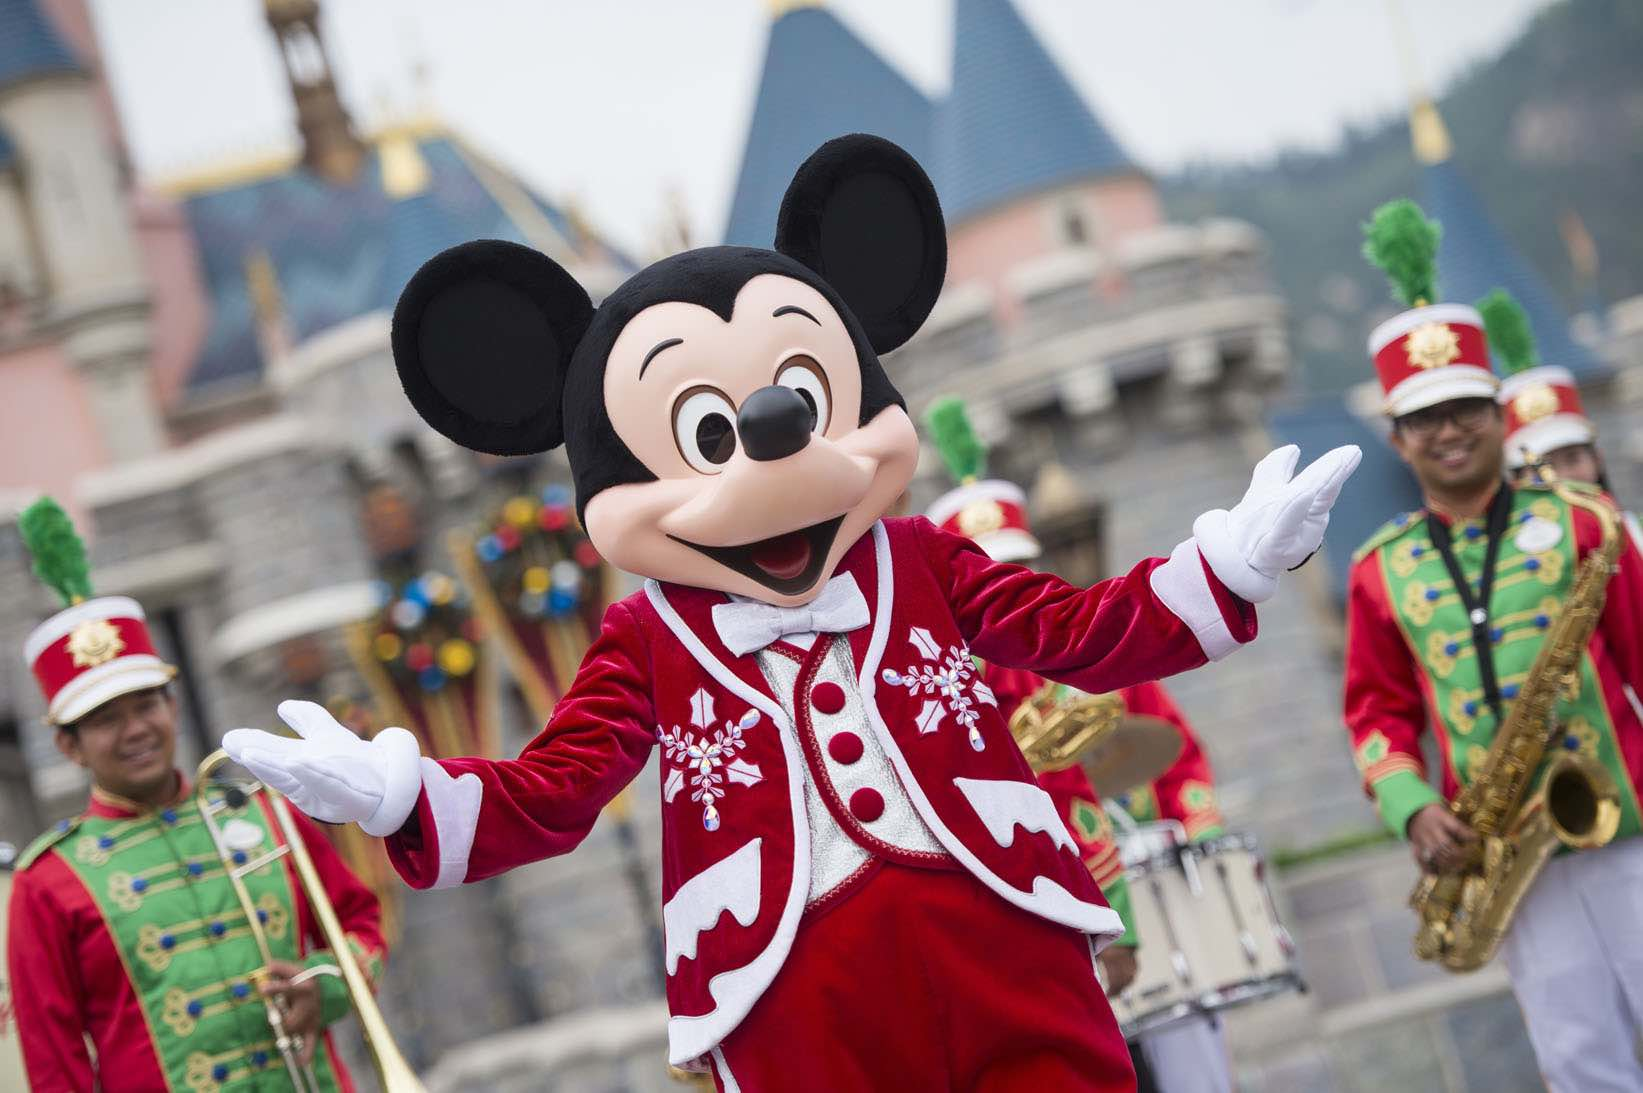 hong kong disneyland christmas celebration woos singapore families with special offers for your hotel stay and park admission which will surely make many - Mickeys Christmas Party Disneyland